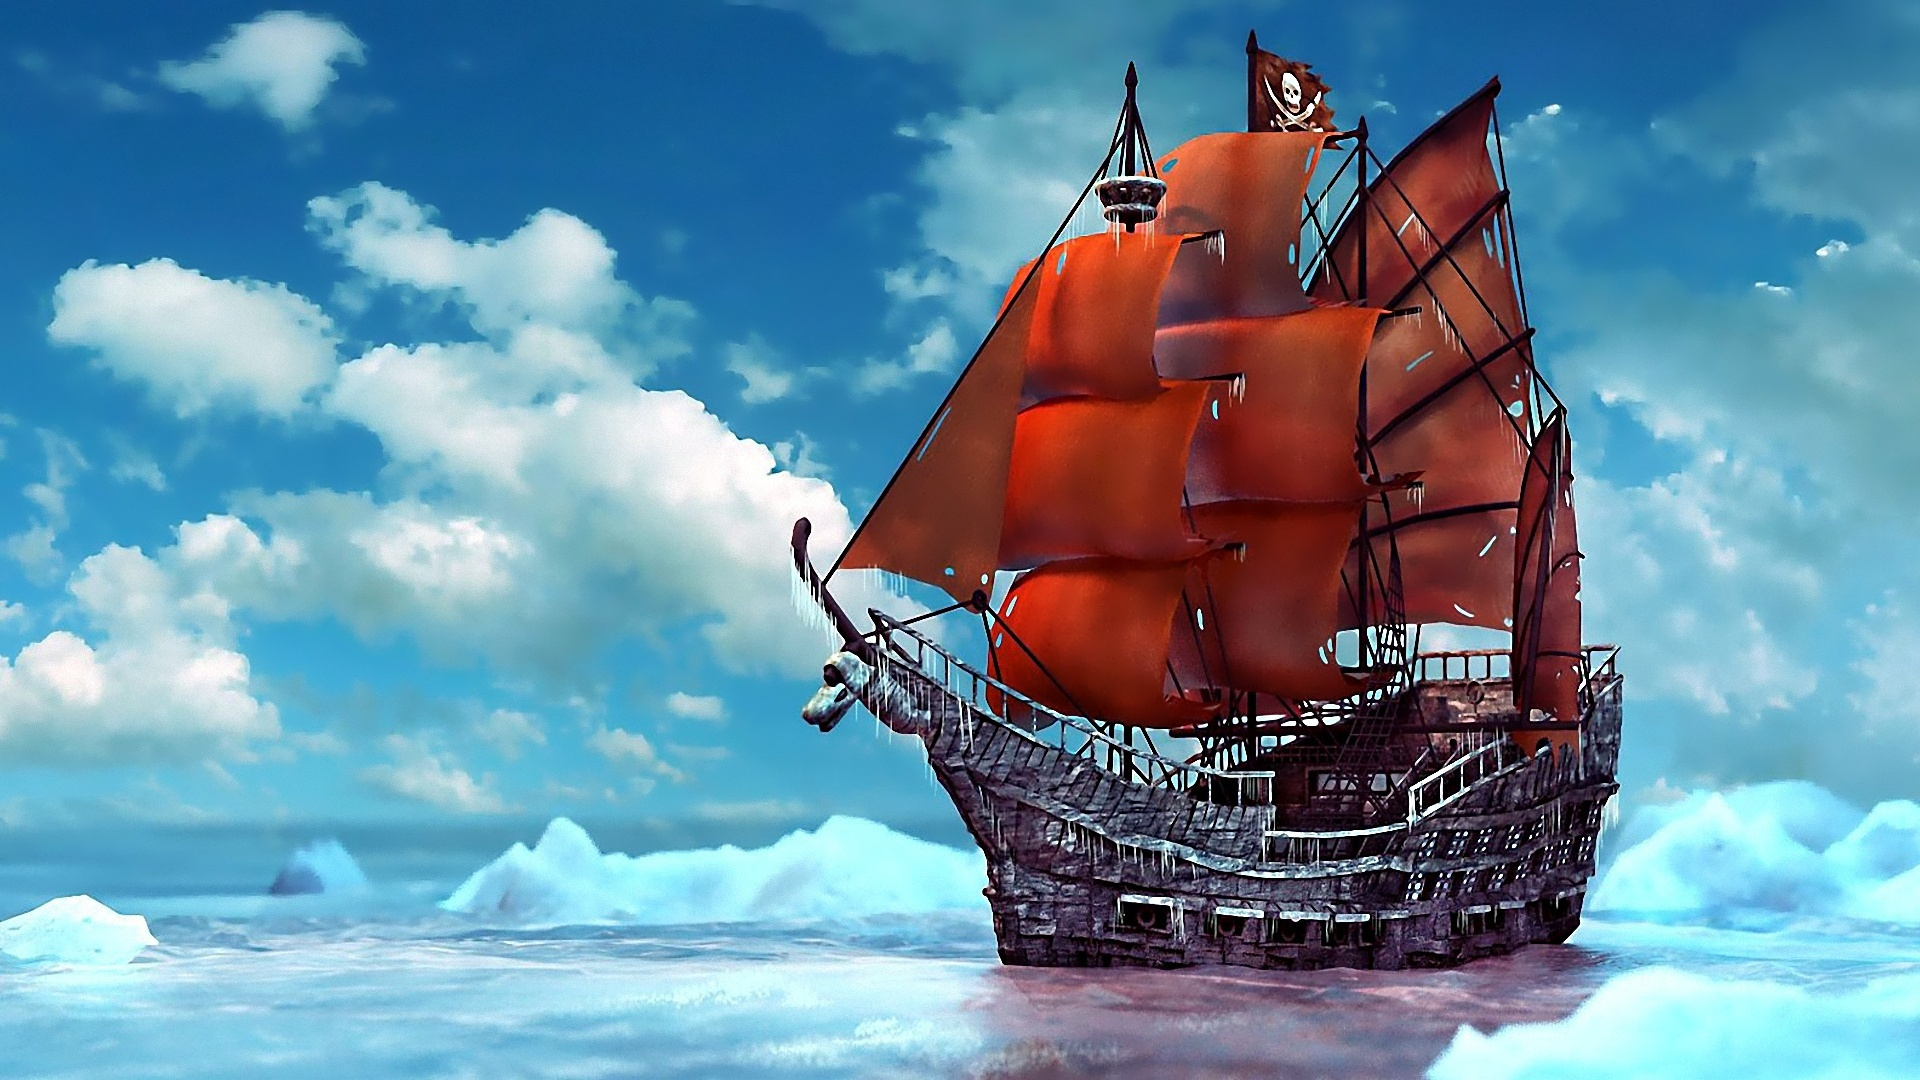 32804 download wallpaper Ships, Pictures screensavers and pictures for free